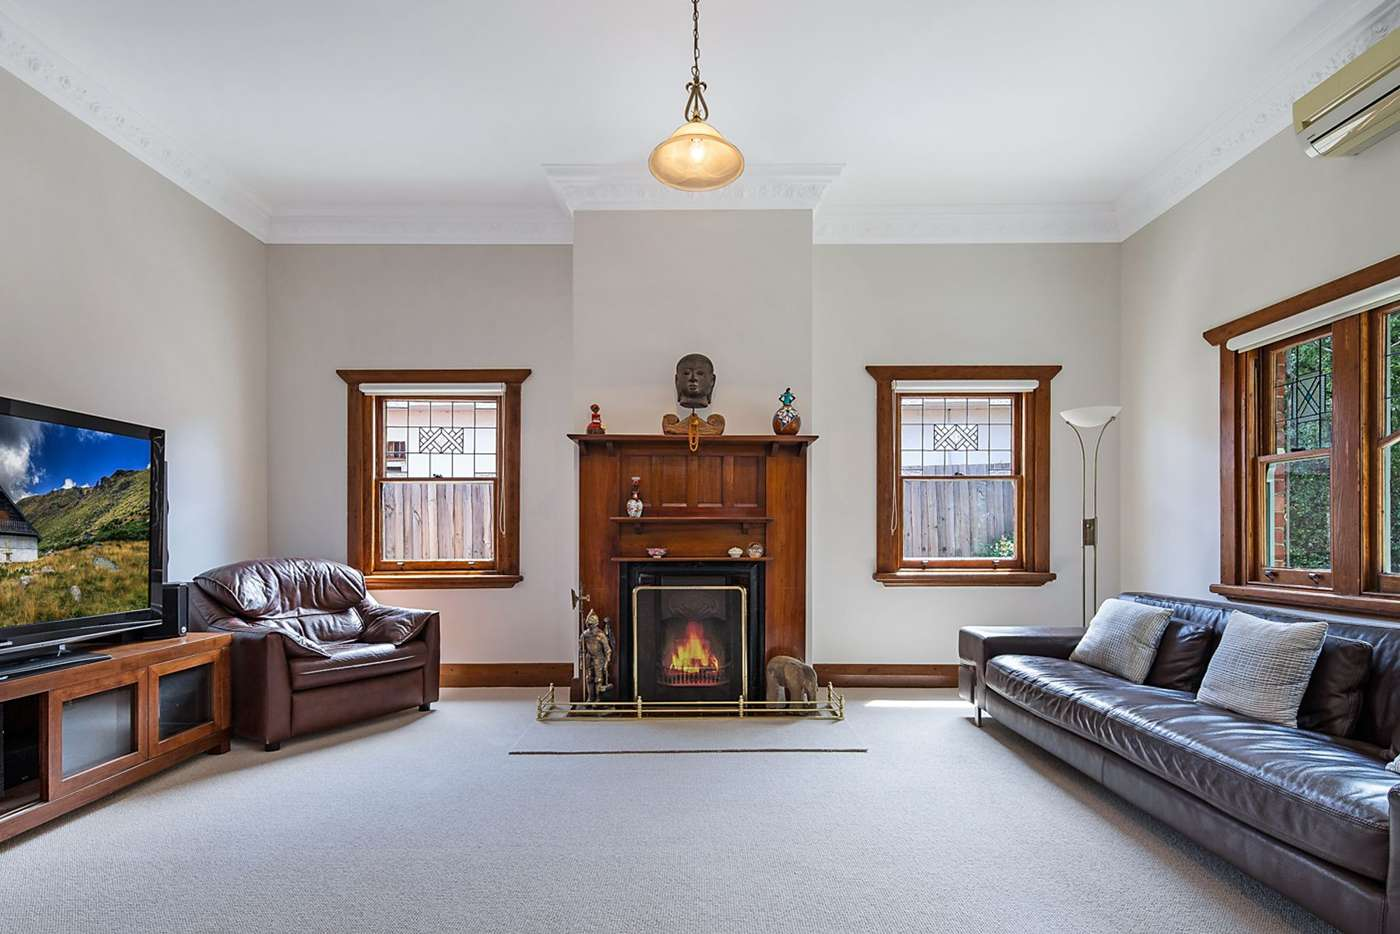 Fifth view of Homely house listing, 54 Highfield Road, Canterbury VIC 3126